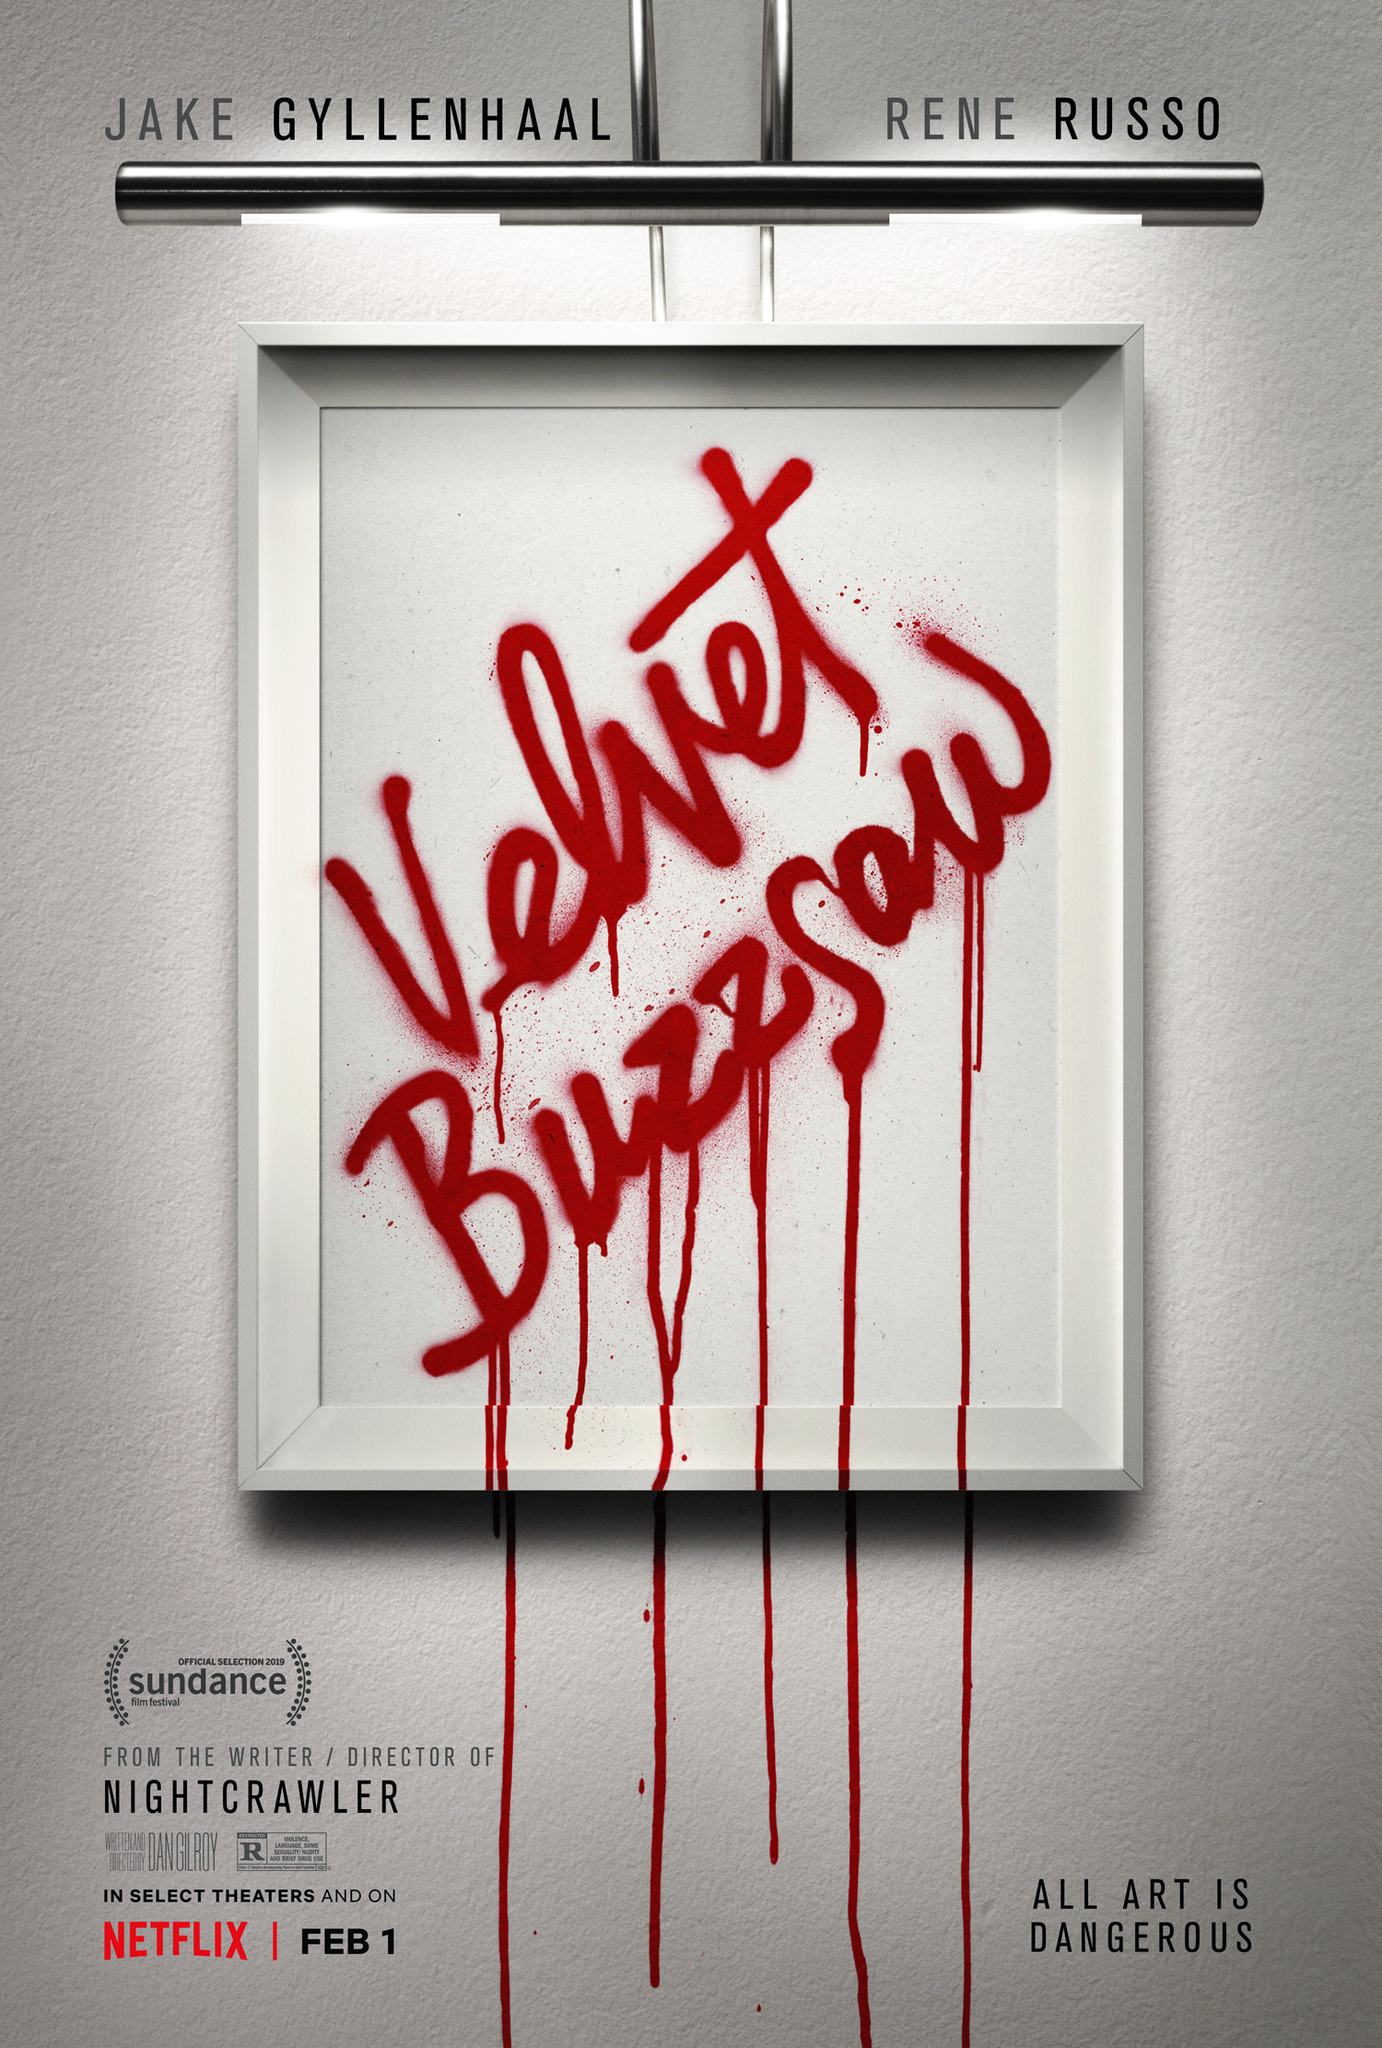 Top rated velvet rain videos and movies